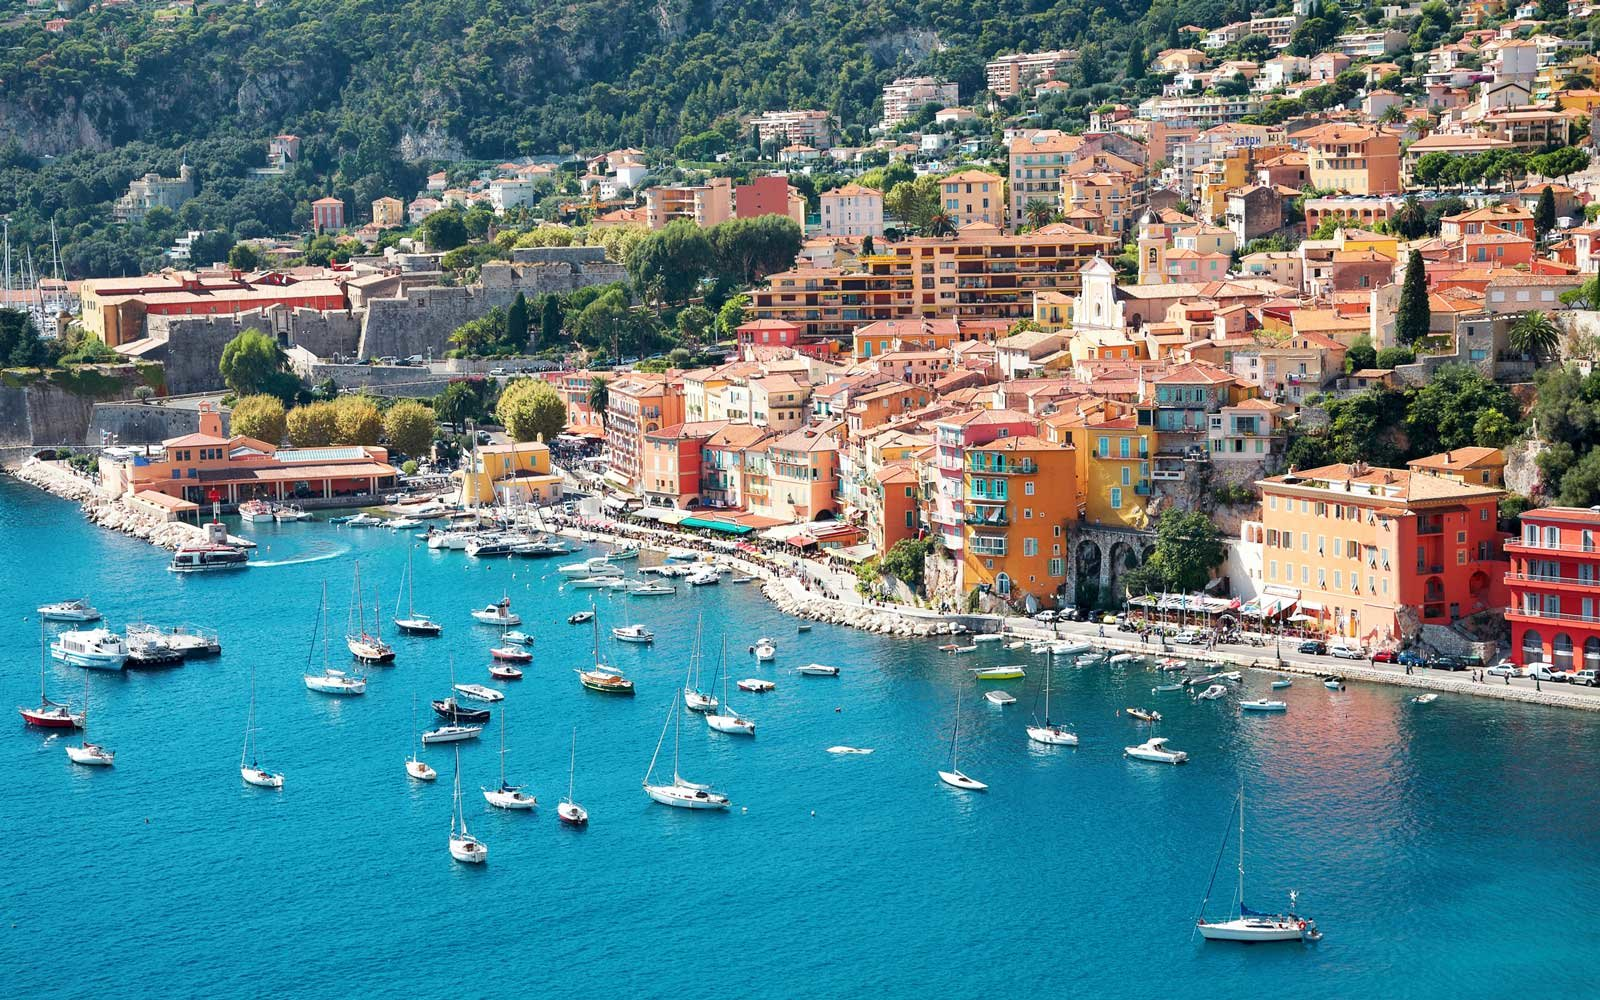 View of luxury resort and bay of Cote d'Azur in France